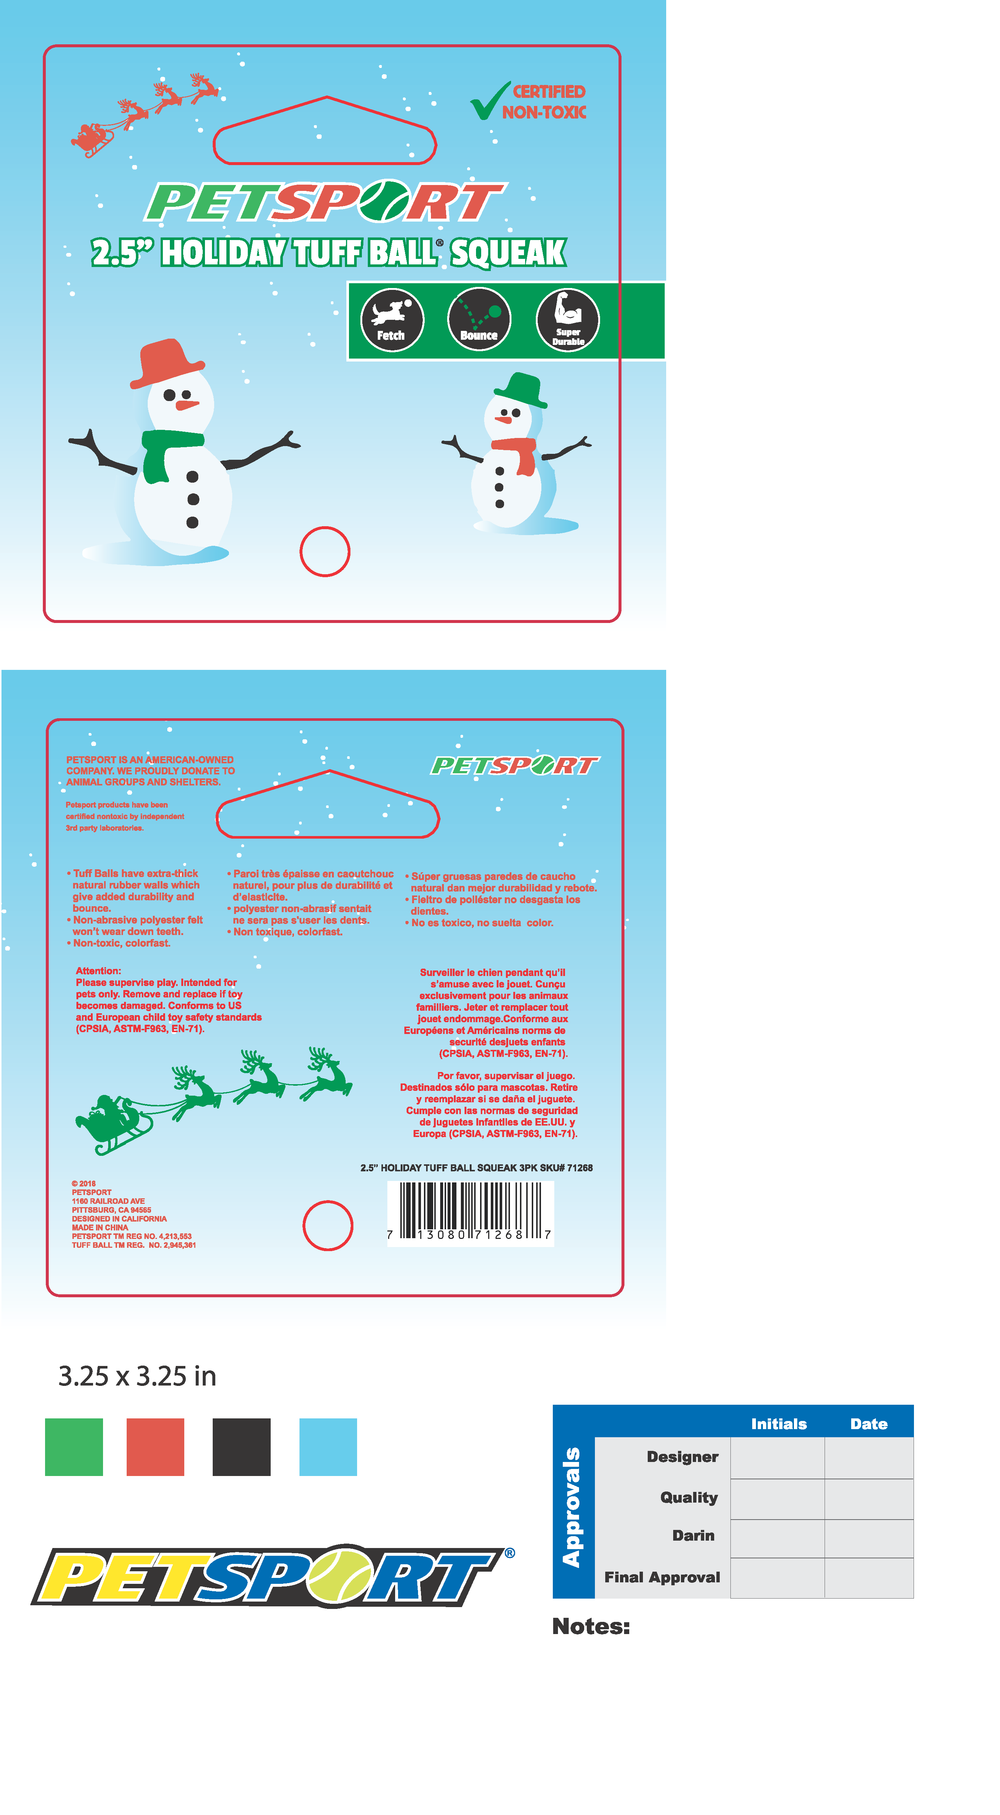 71268 2.5in Holiday Tuff Ball Squeak 6-29-18 All Outlines.png